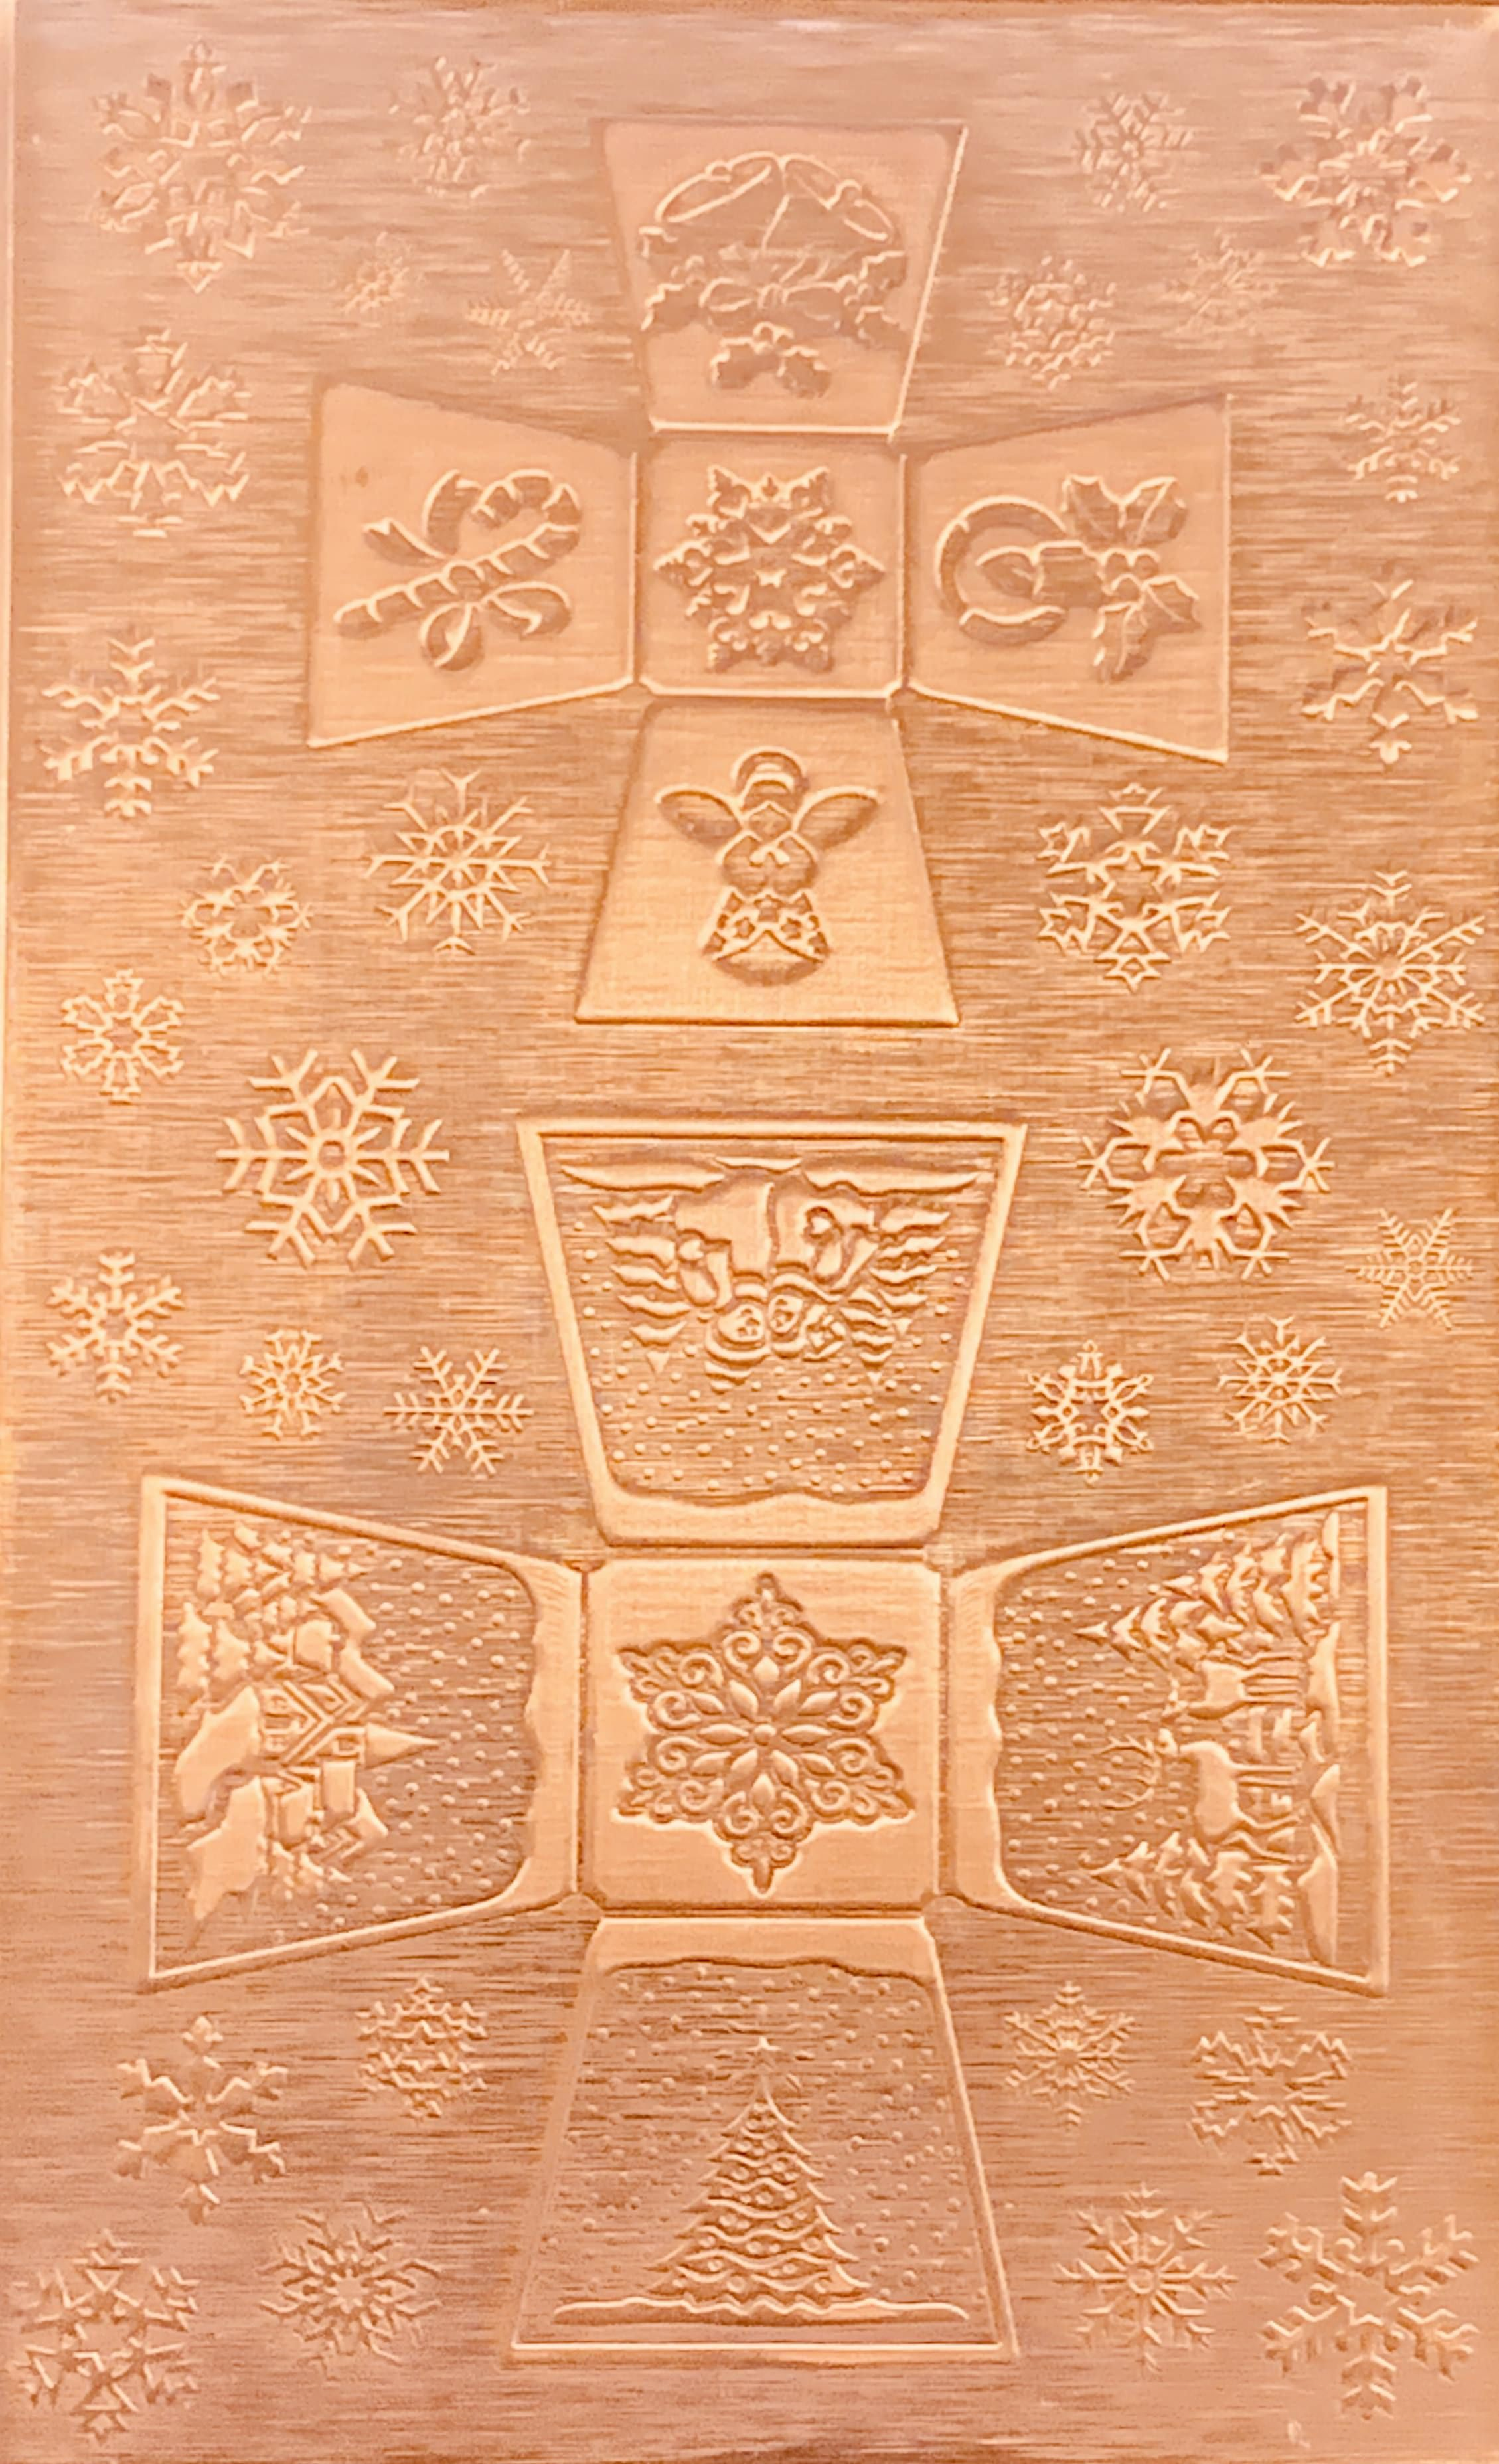 Square Sided Jingle Bell Copper Pattern Pressing 2 1 2 X 4 Metal Maven Jingle Bells Snowflake Designs Copper